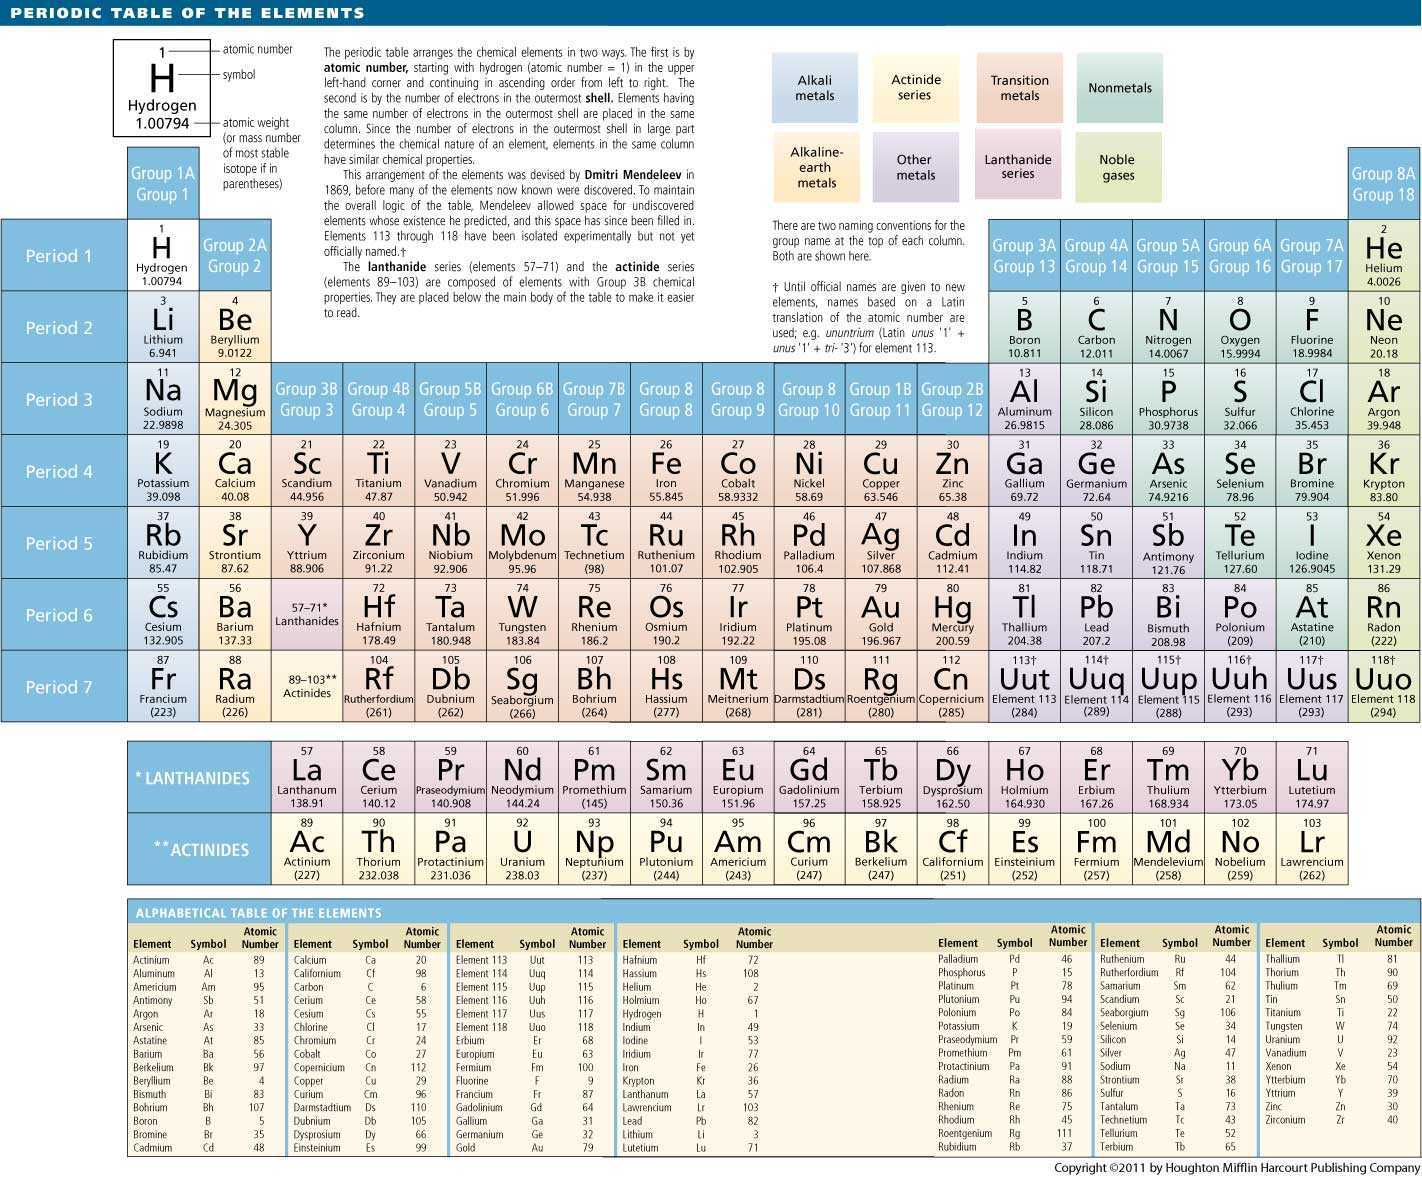 Periodic table dictionary definition periodic table defined periodic table gamestrikefo Gallery